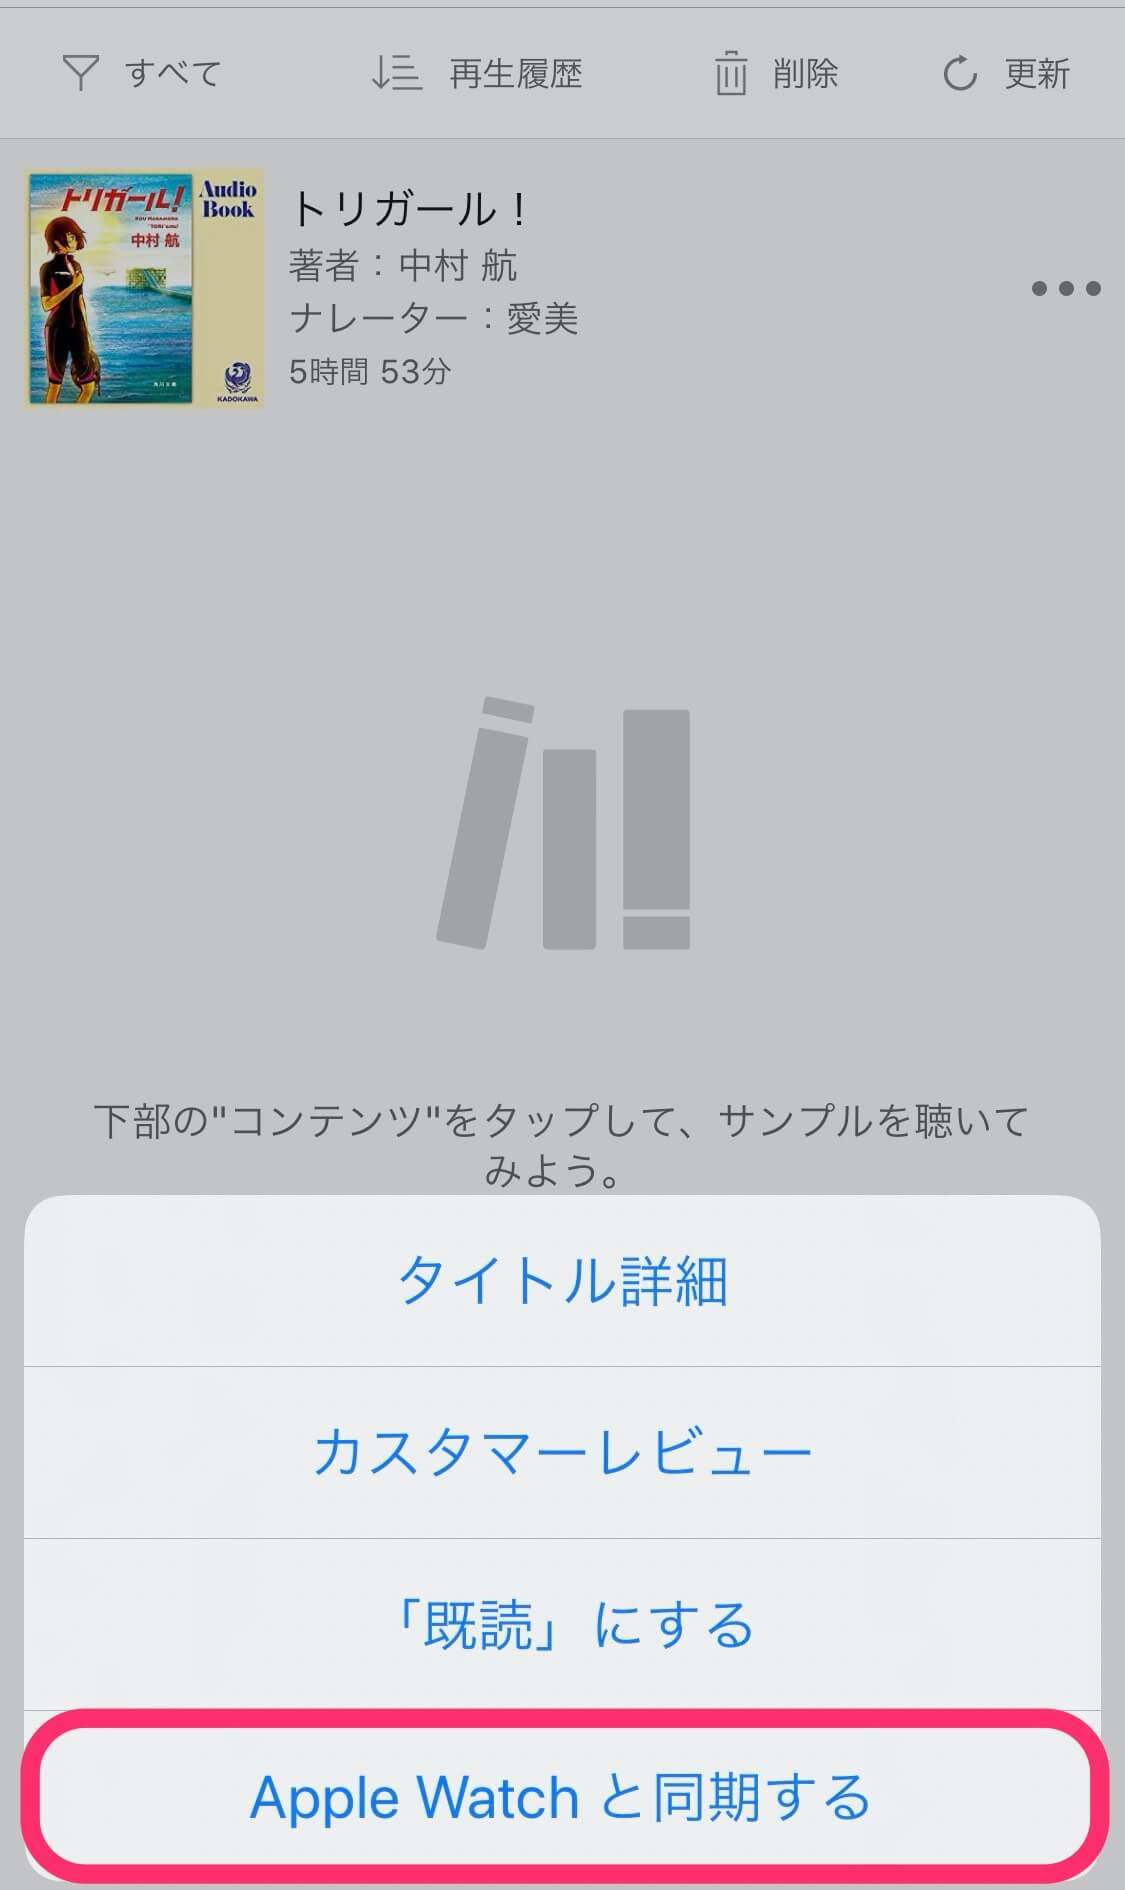 Audible同期